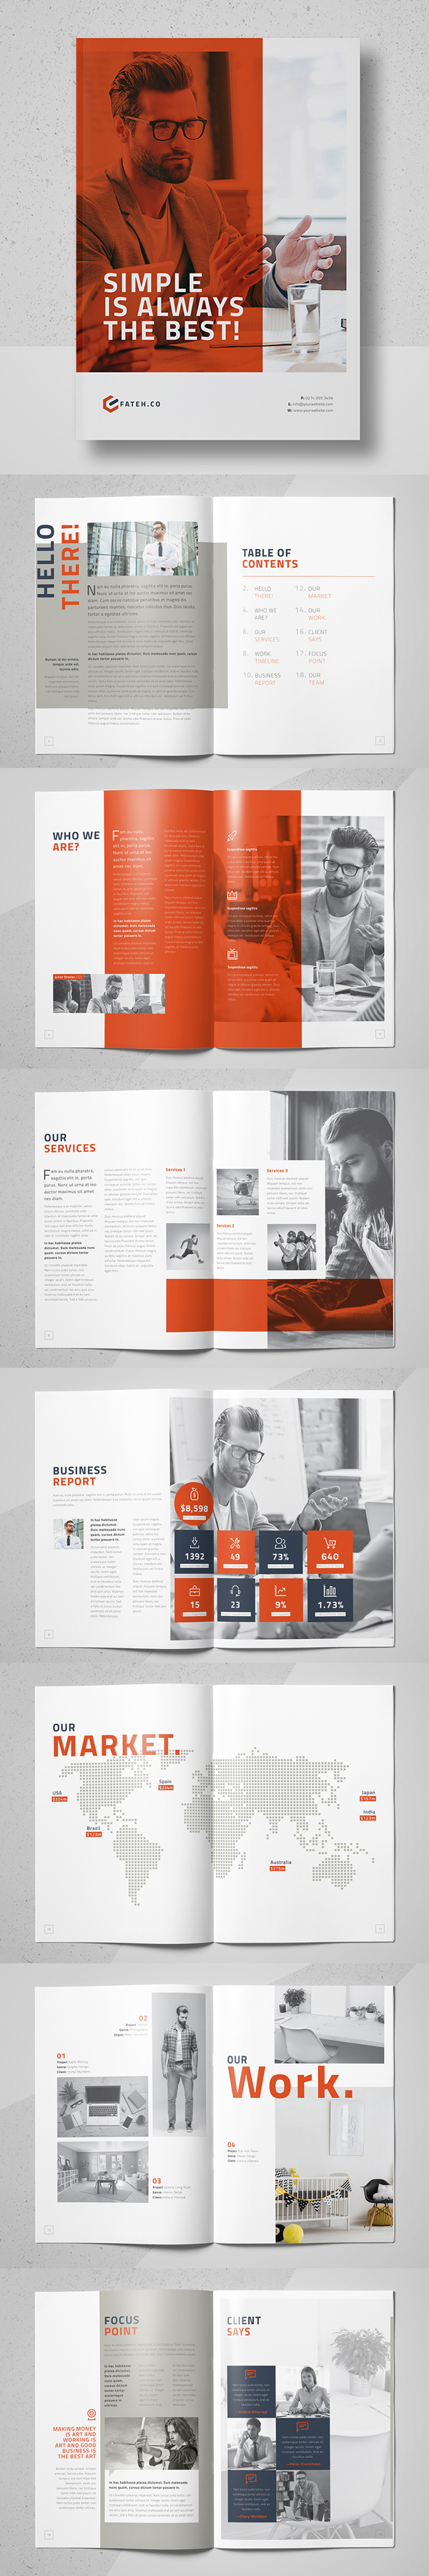 100 Professional Corporate Brochure Templates - 3